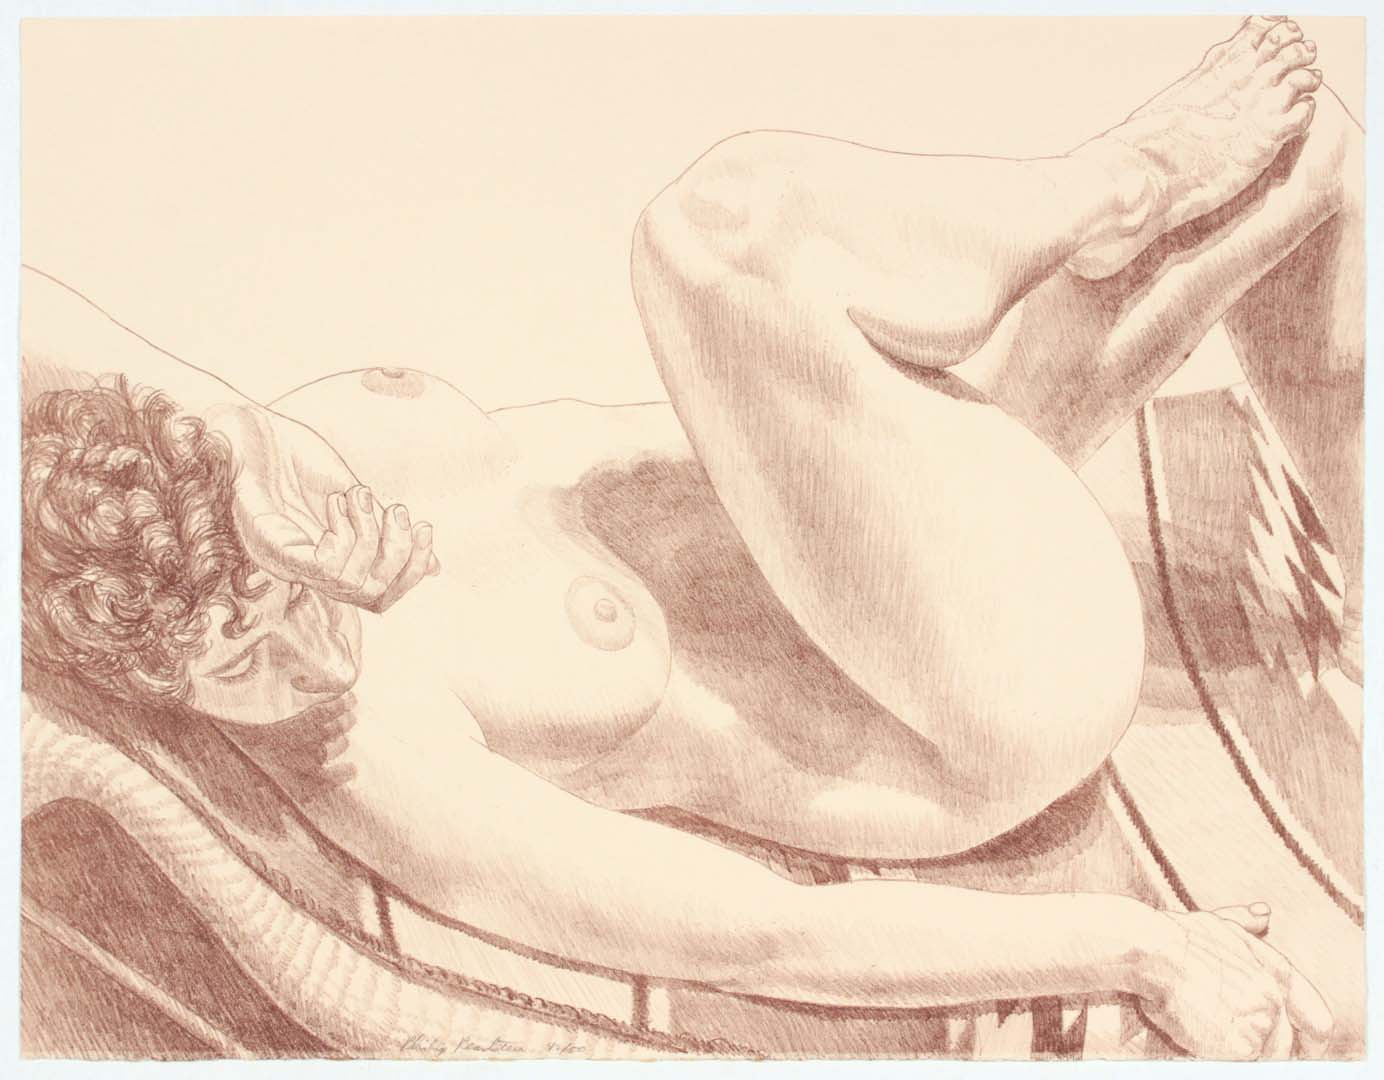 1972 Nude Reclining on Her Back Lithograph on Paper 20 x 25.75